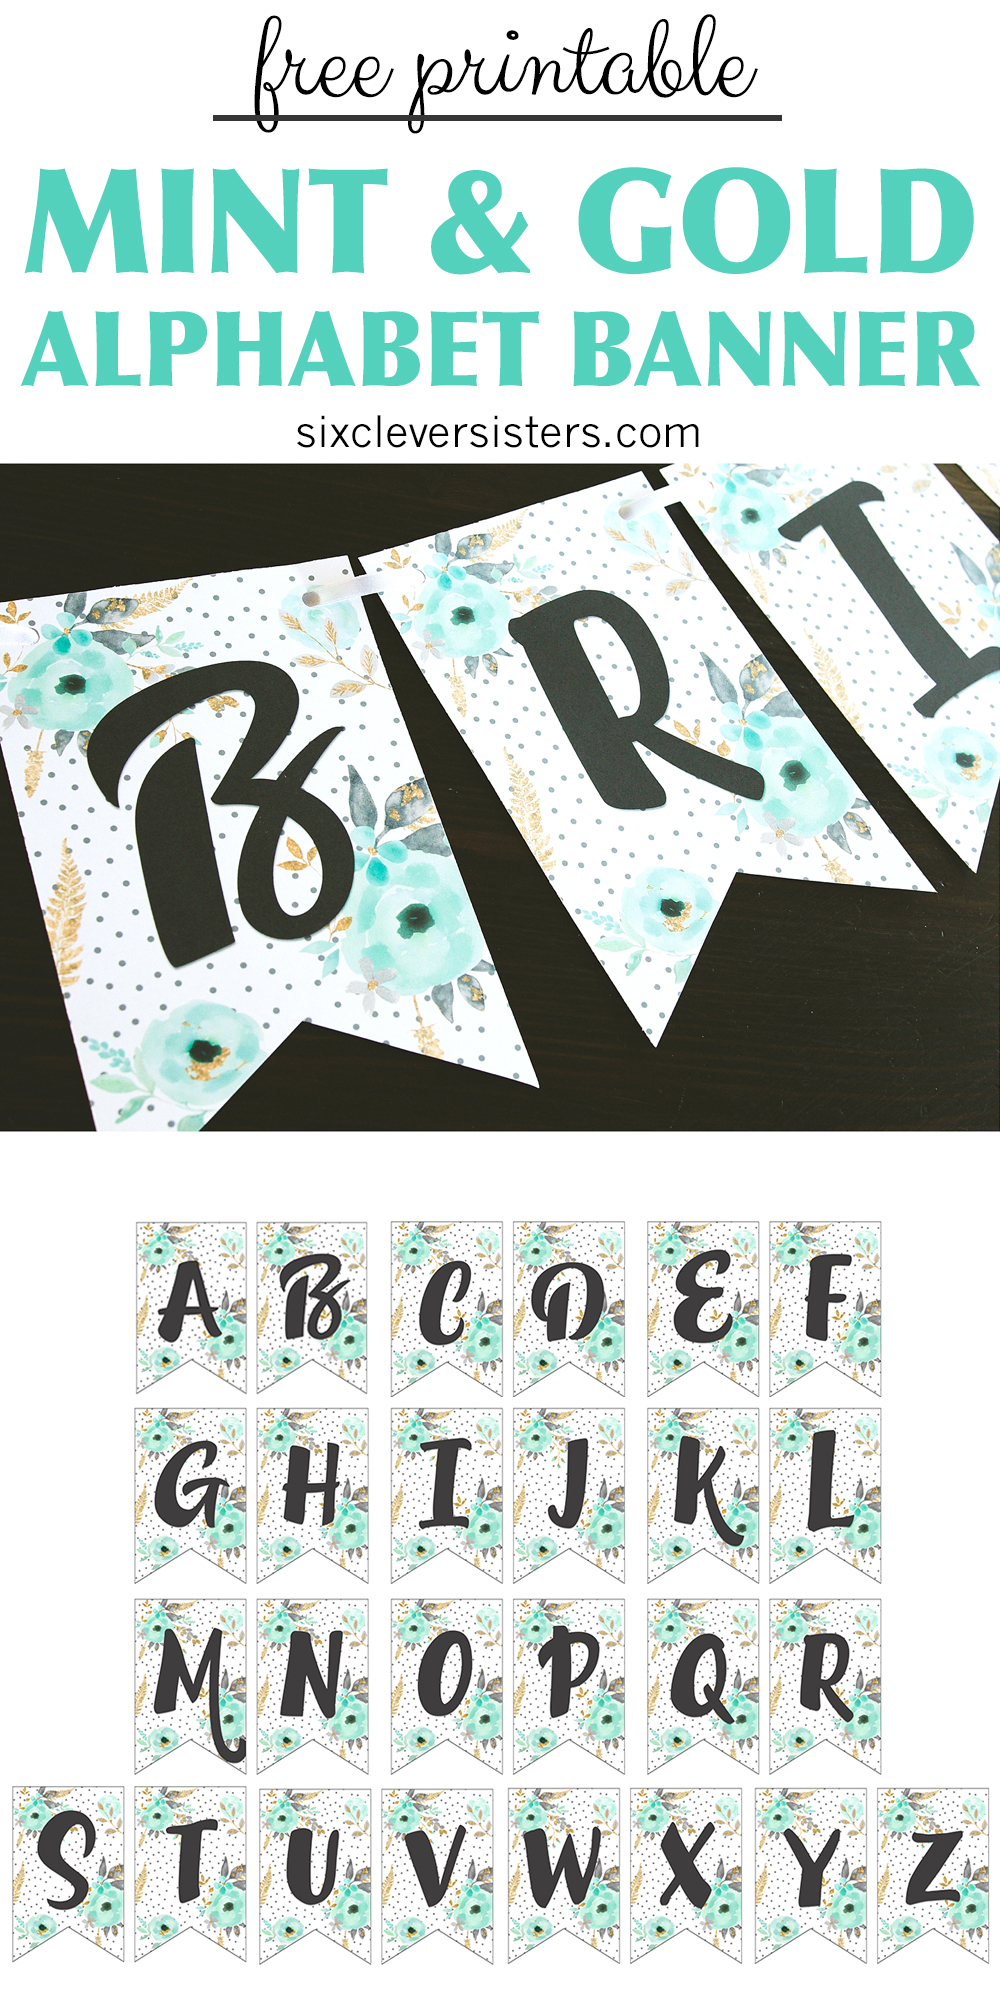 Free Printable Alphabet Banner Mint And Gold | Free Printable Letters For  Banners | Free Printable